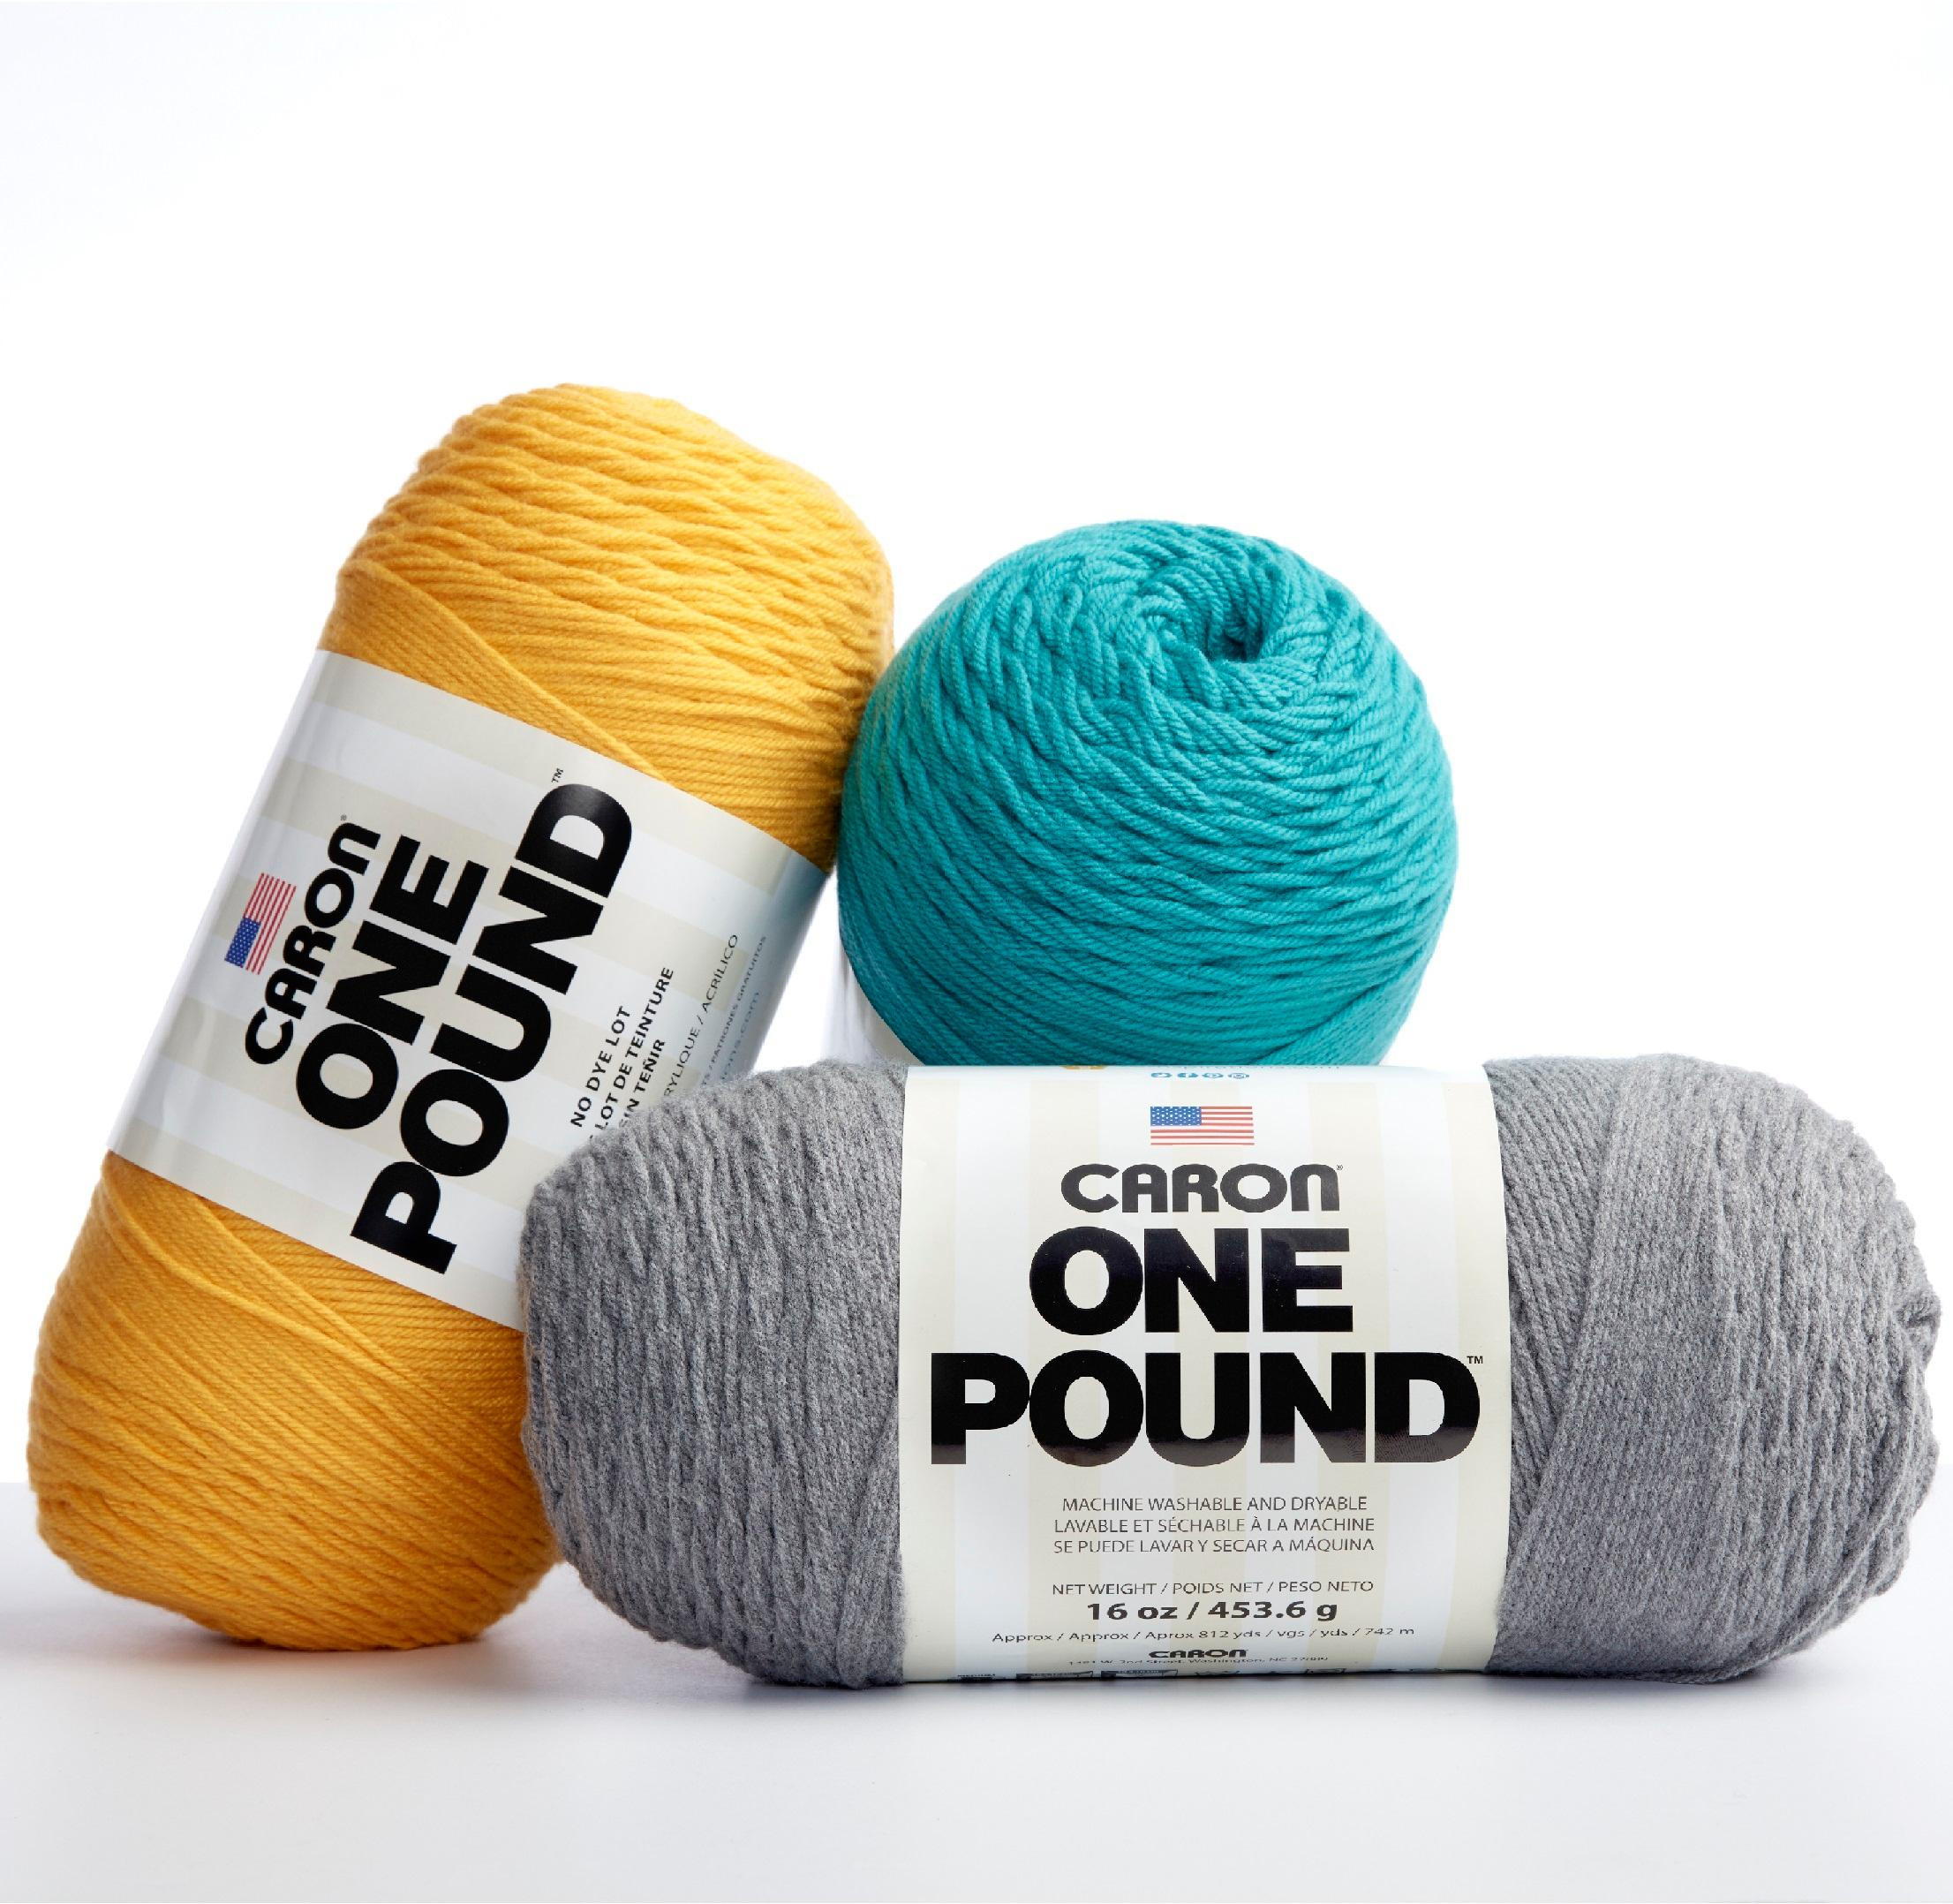 New Caron E Pound Yarn 16 Oz Pale Royal Blue Caron Yarn Colors Of Attractive 45 Pictures Caron Yarn Colors